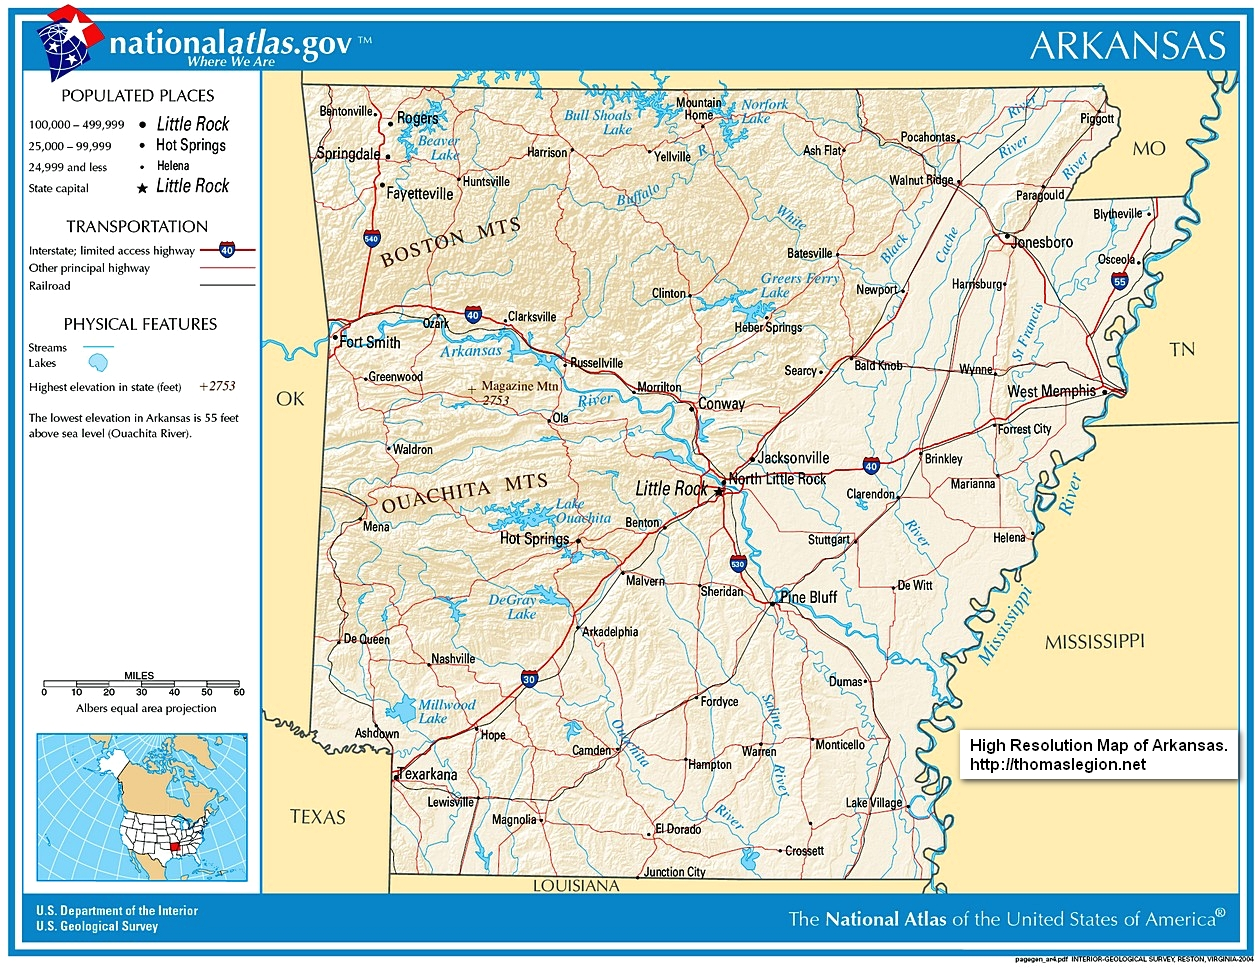 Arkansas Civil War History Battles Army Soldiers Casualties - Native american tribes arkansas map